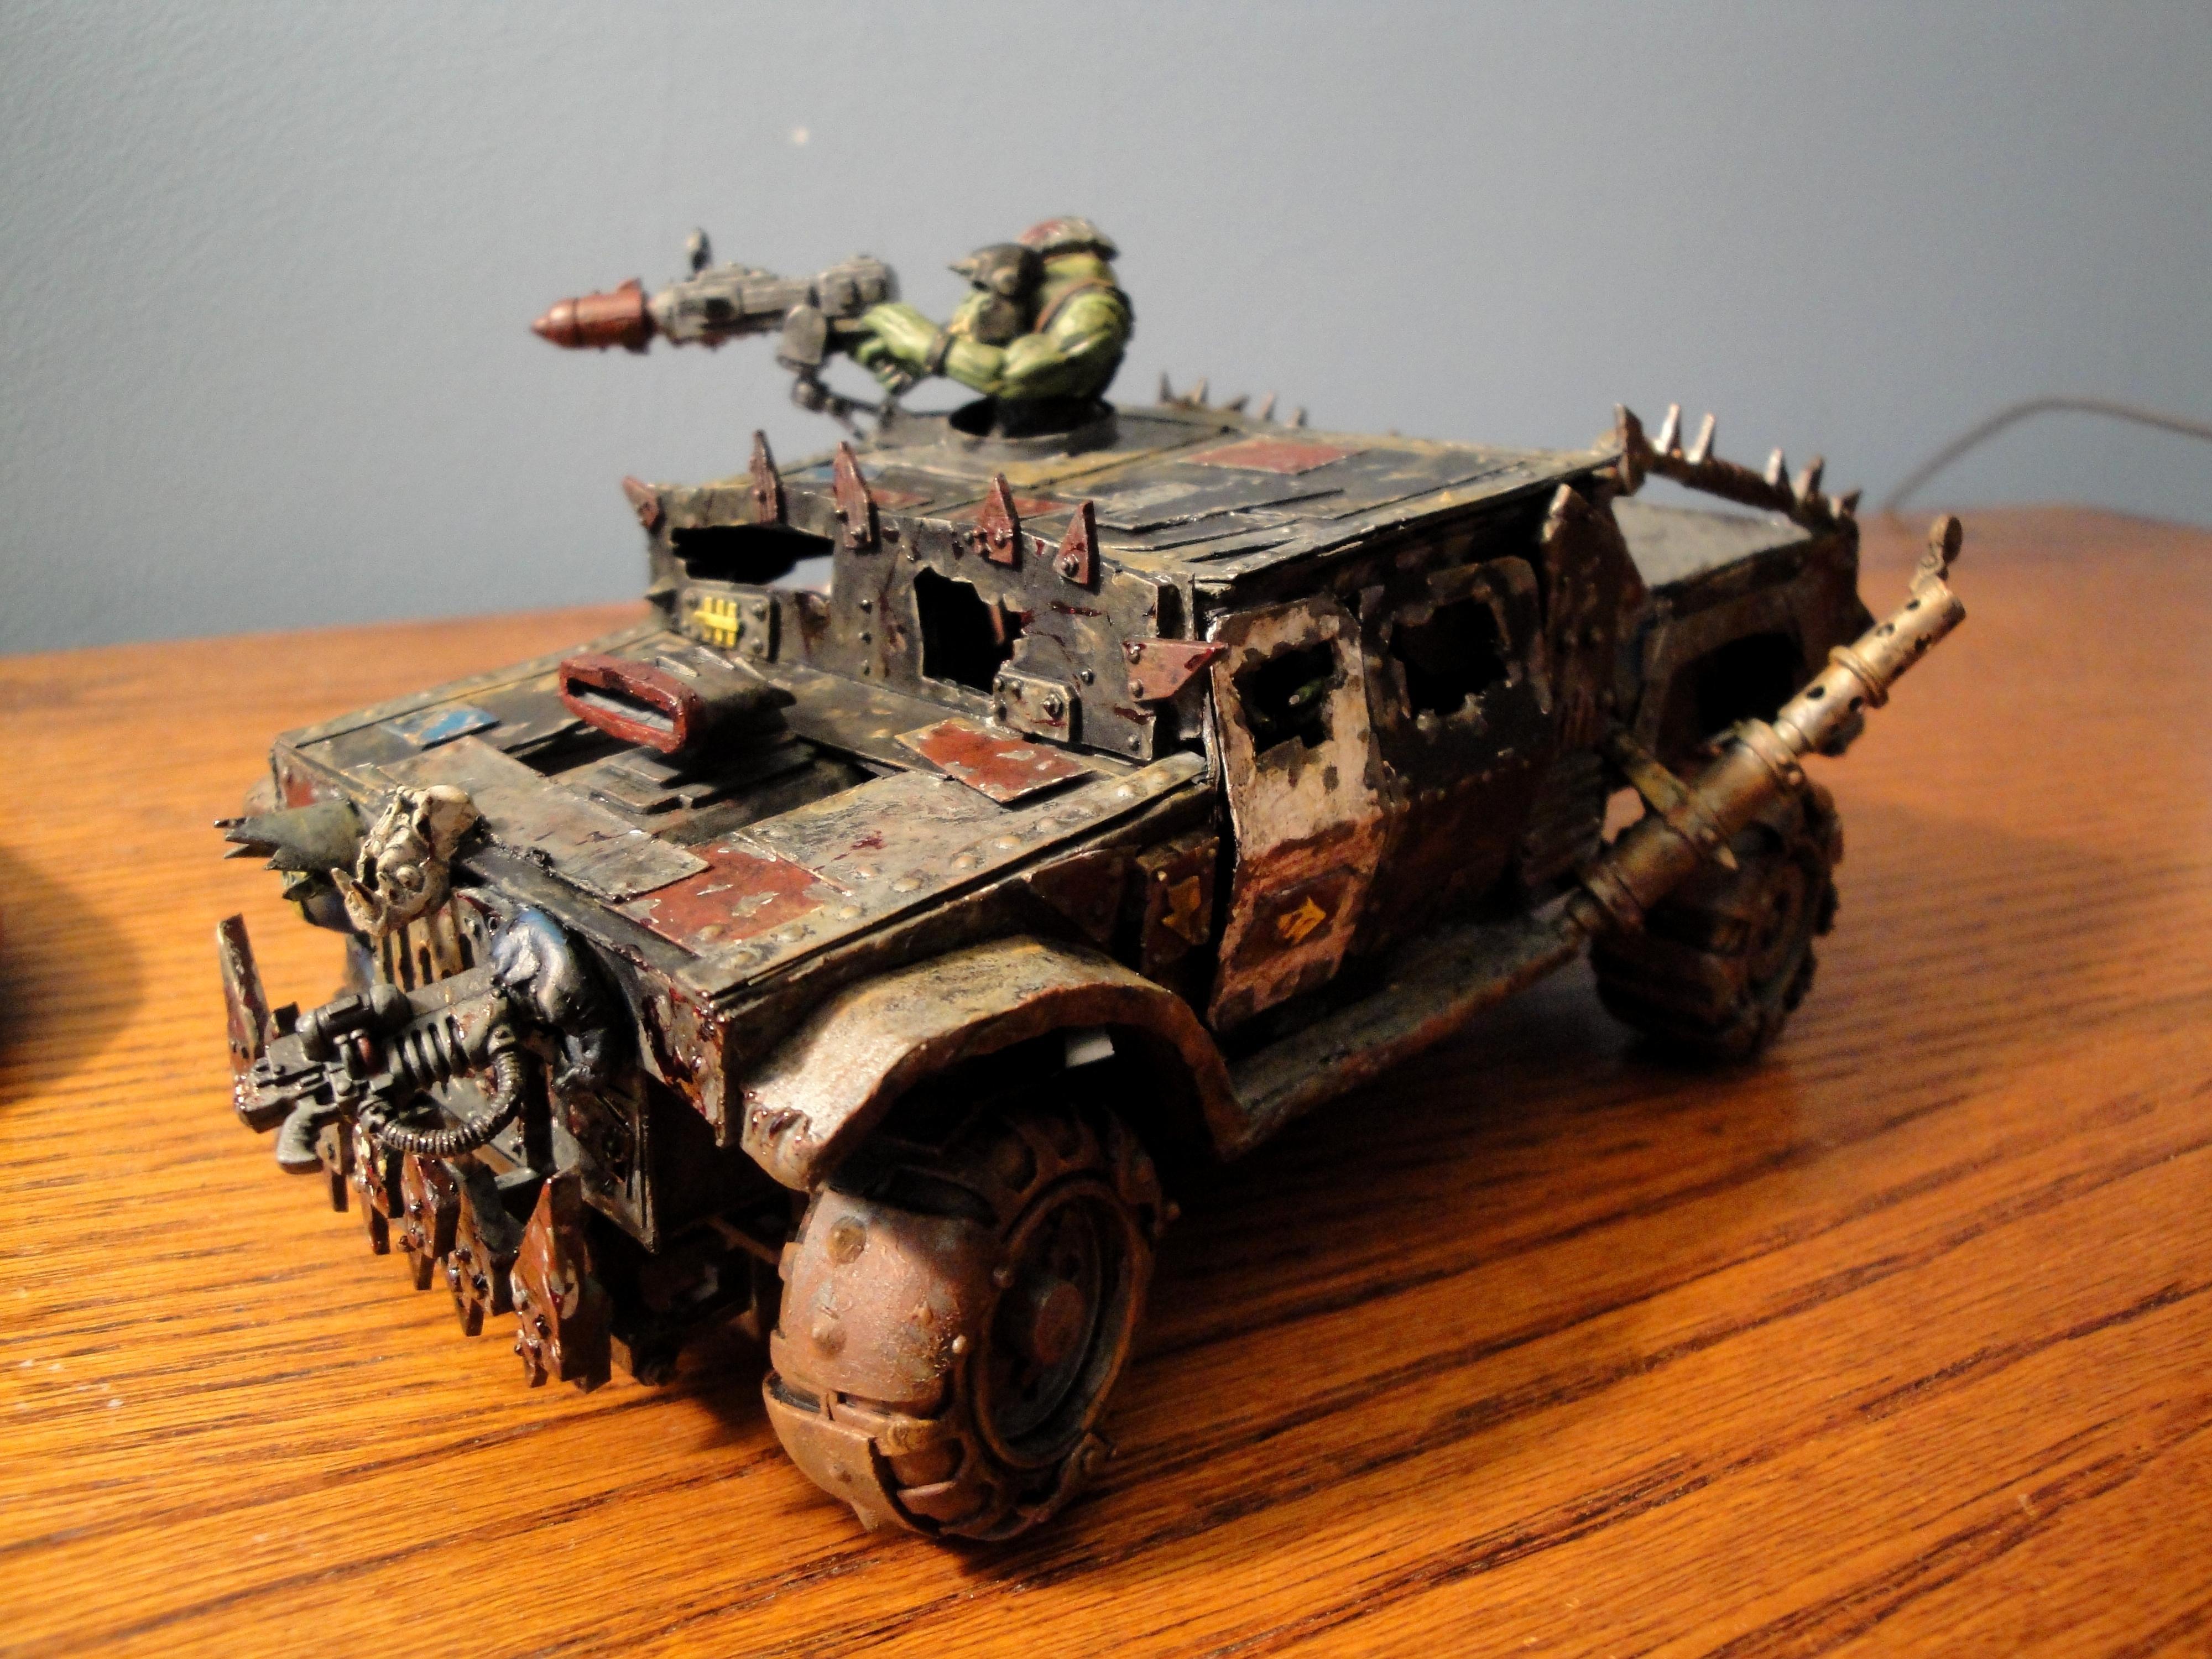 Buggy, Hummer, Jeep, Orks, Scratch Build, Warbuggies